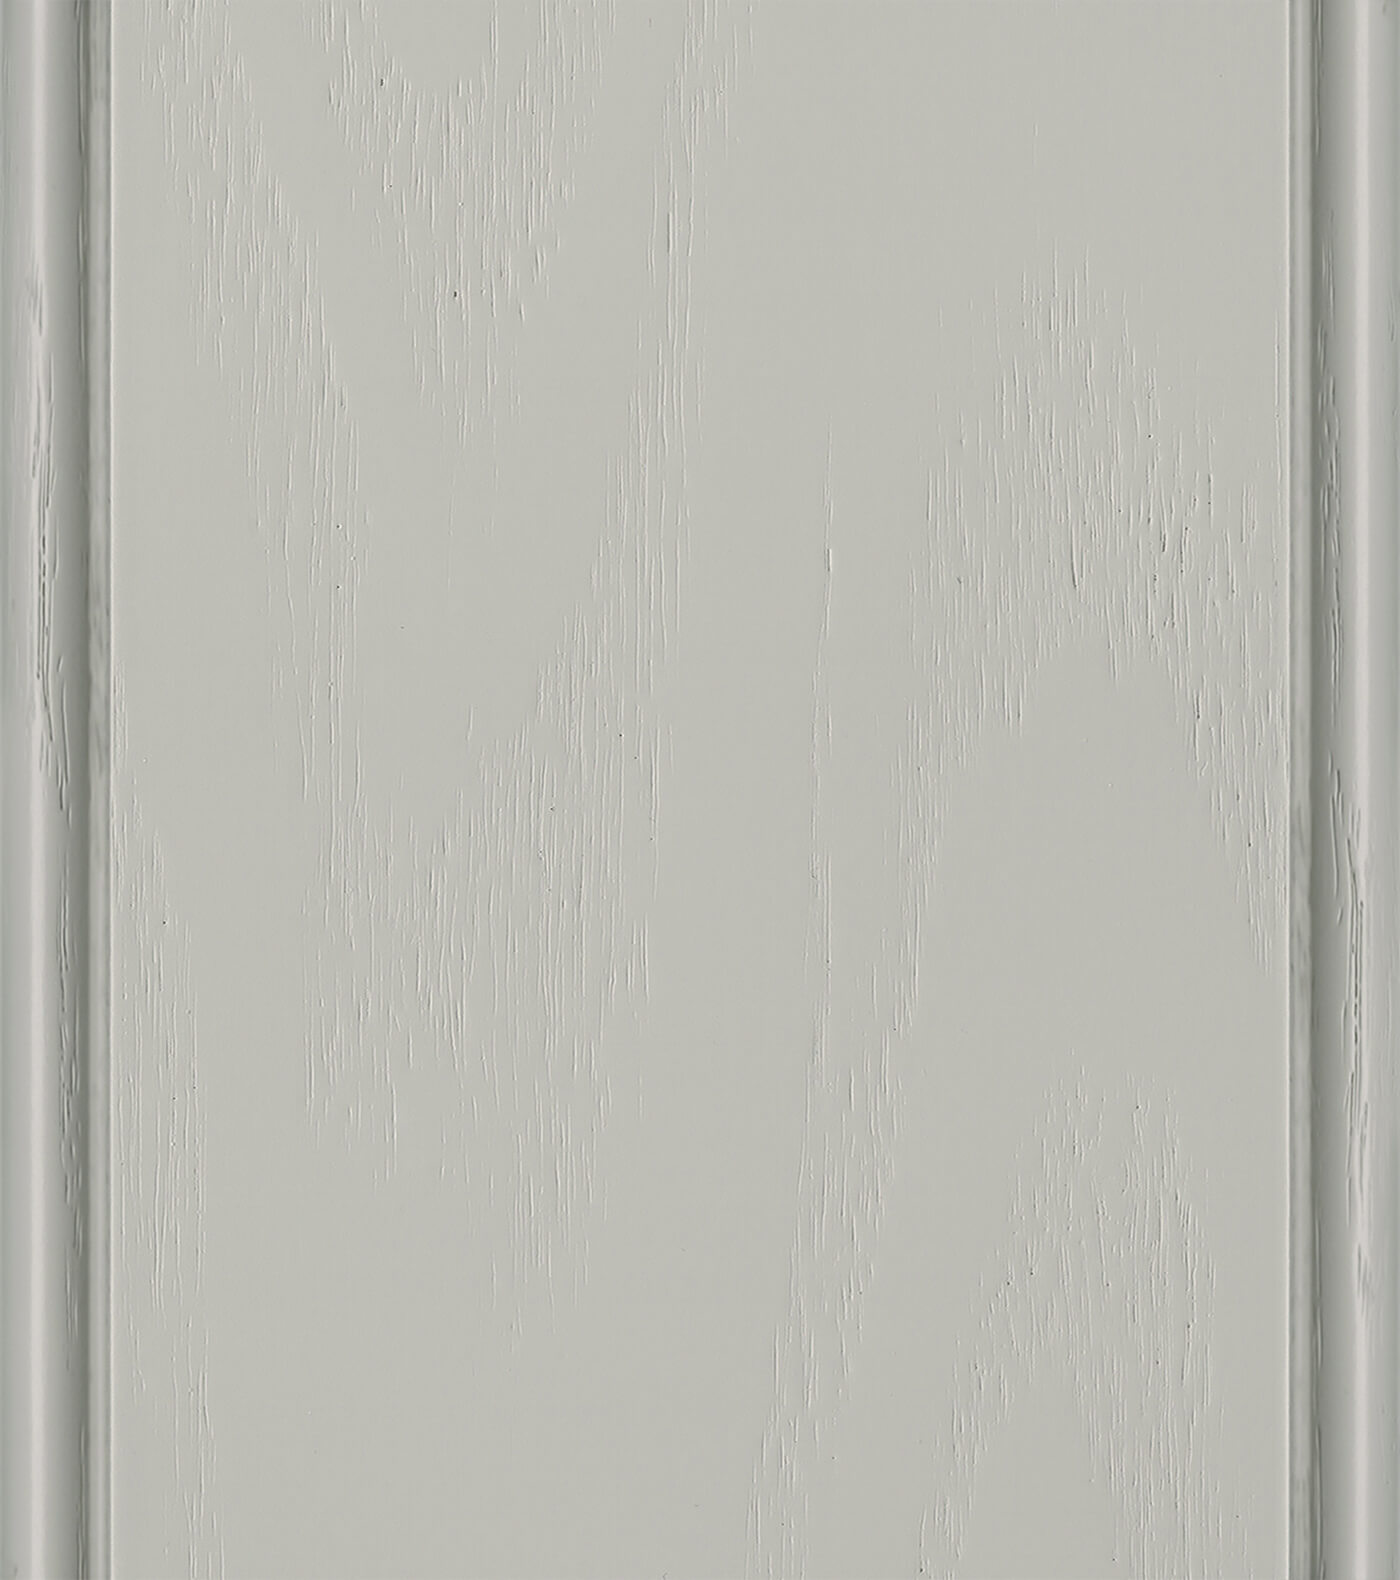 Moonstone Paint on Red Oak or Quarter-Sawn Red Oak